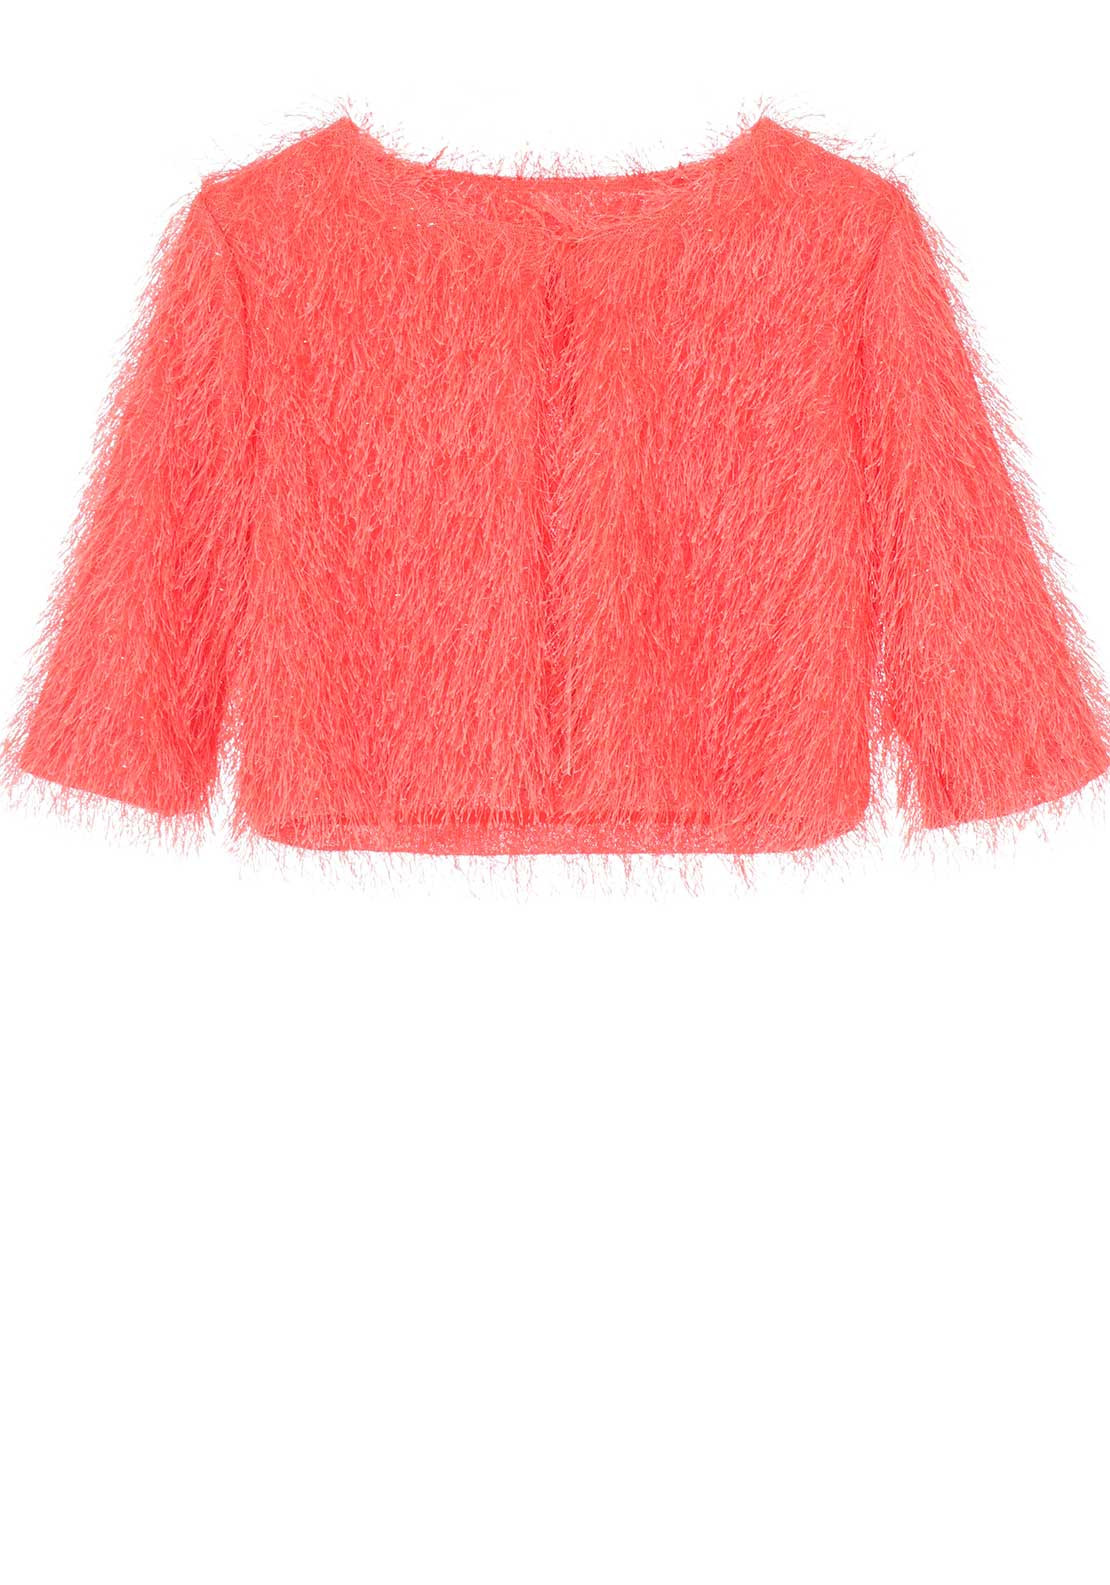 Alice Pi Fringed Bolero Jacket, Orange